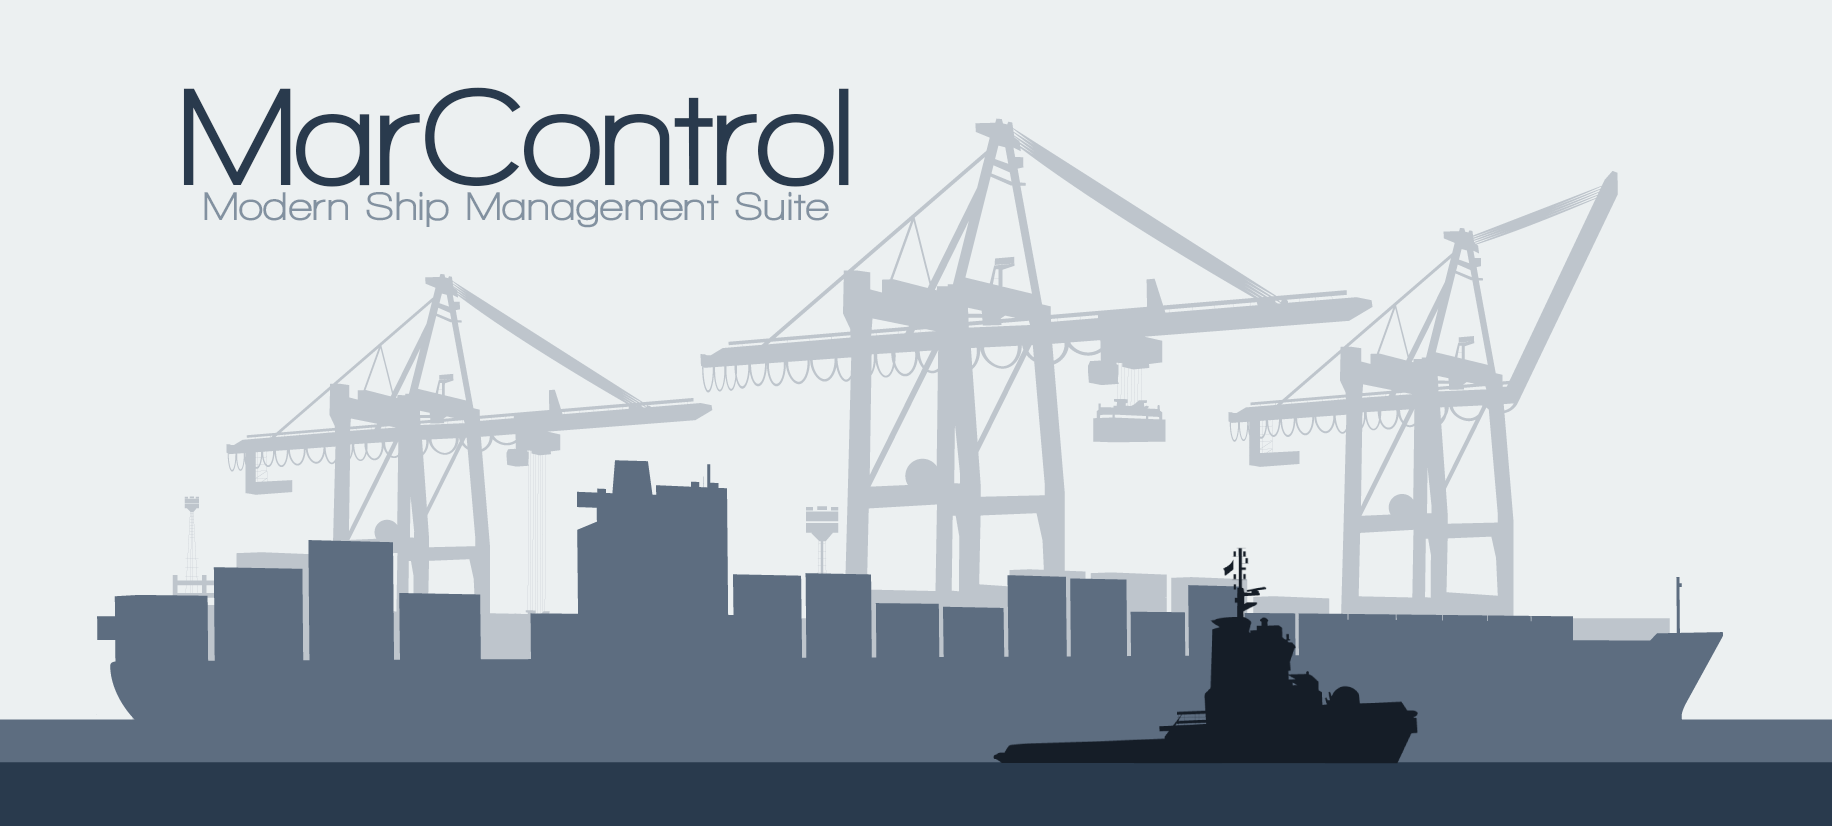 MarControl Splash Image - MarControl : Modern Ship Management Suite